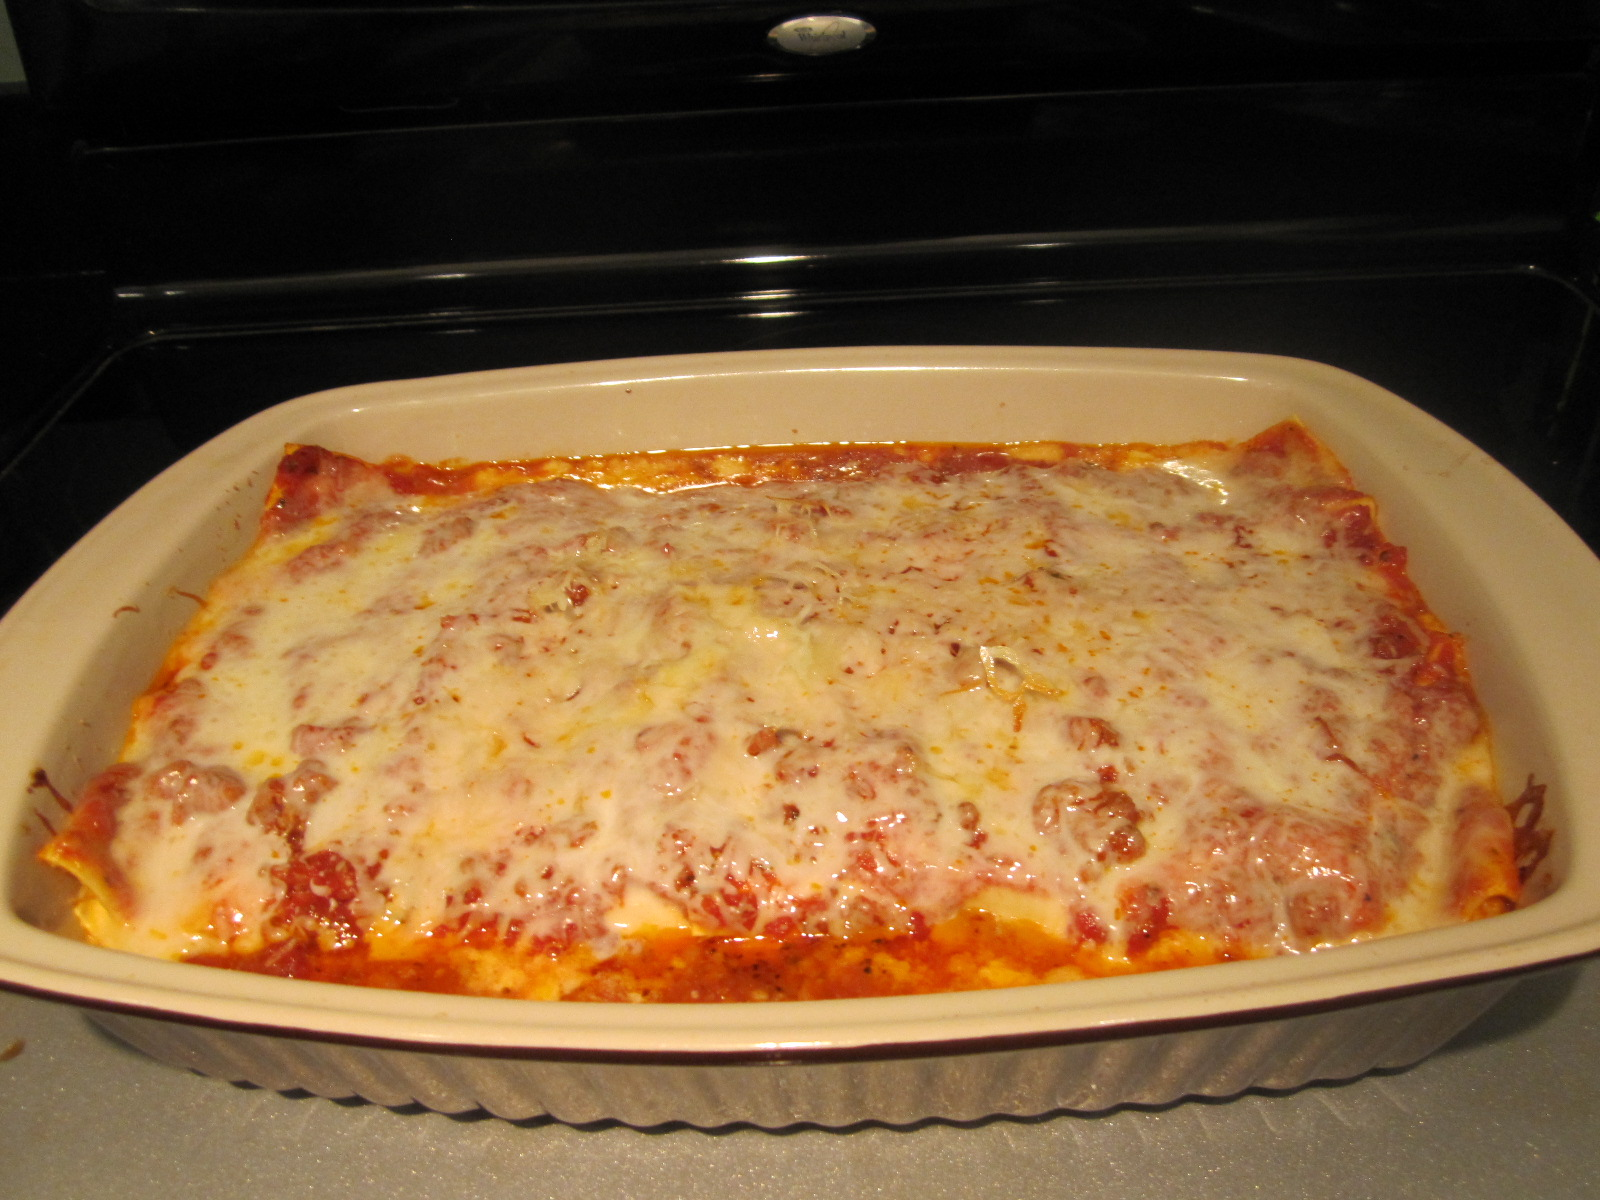 Sophie in the Kitchen: Lasagna with Homemade Tomato Sauce